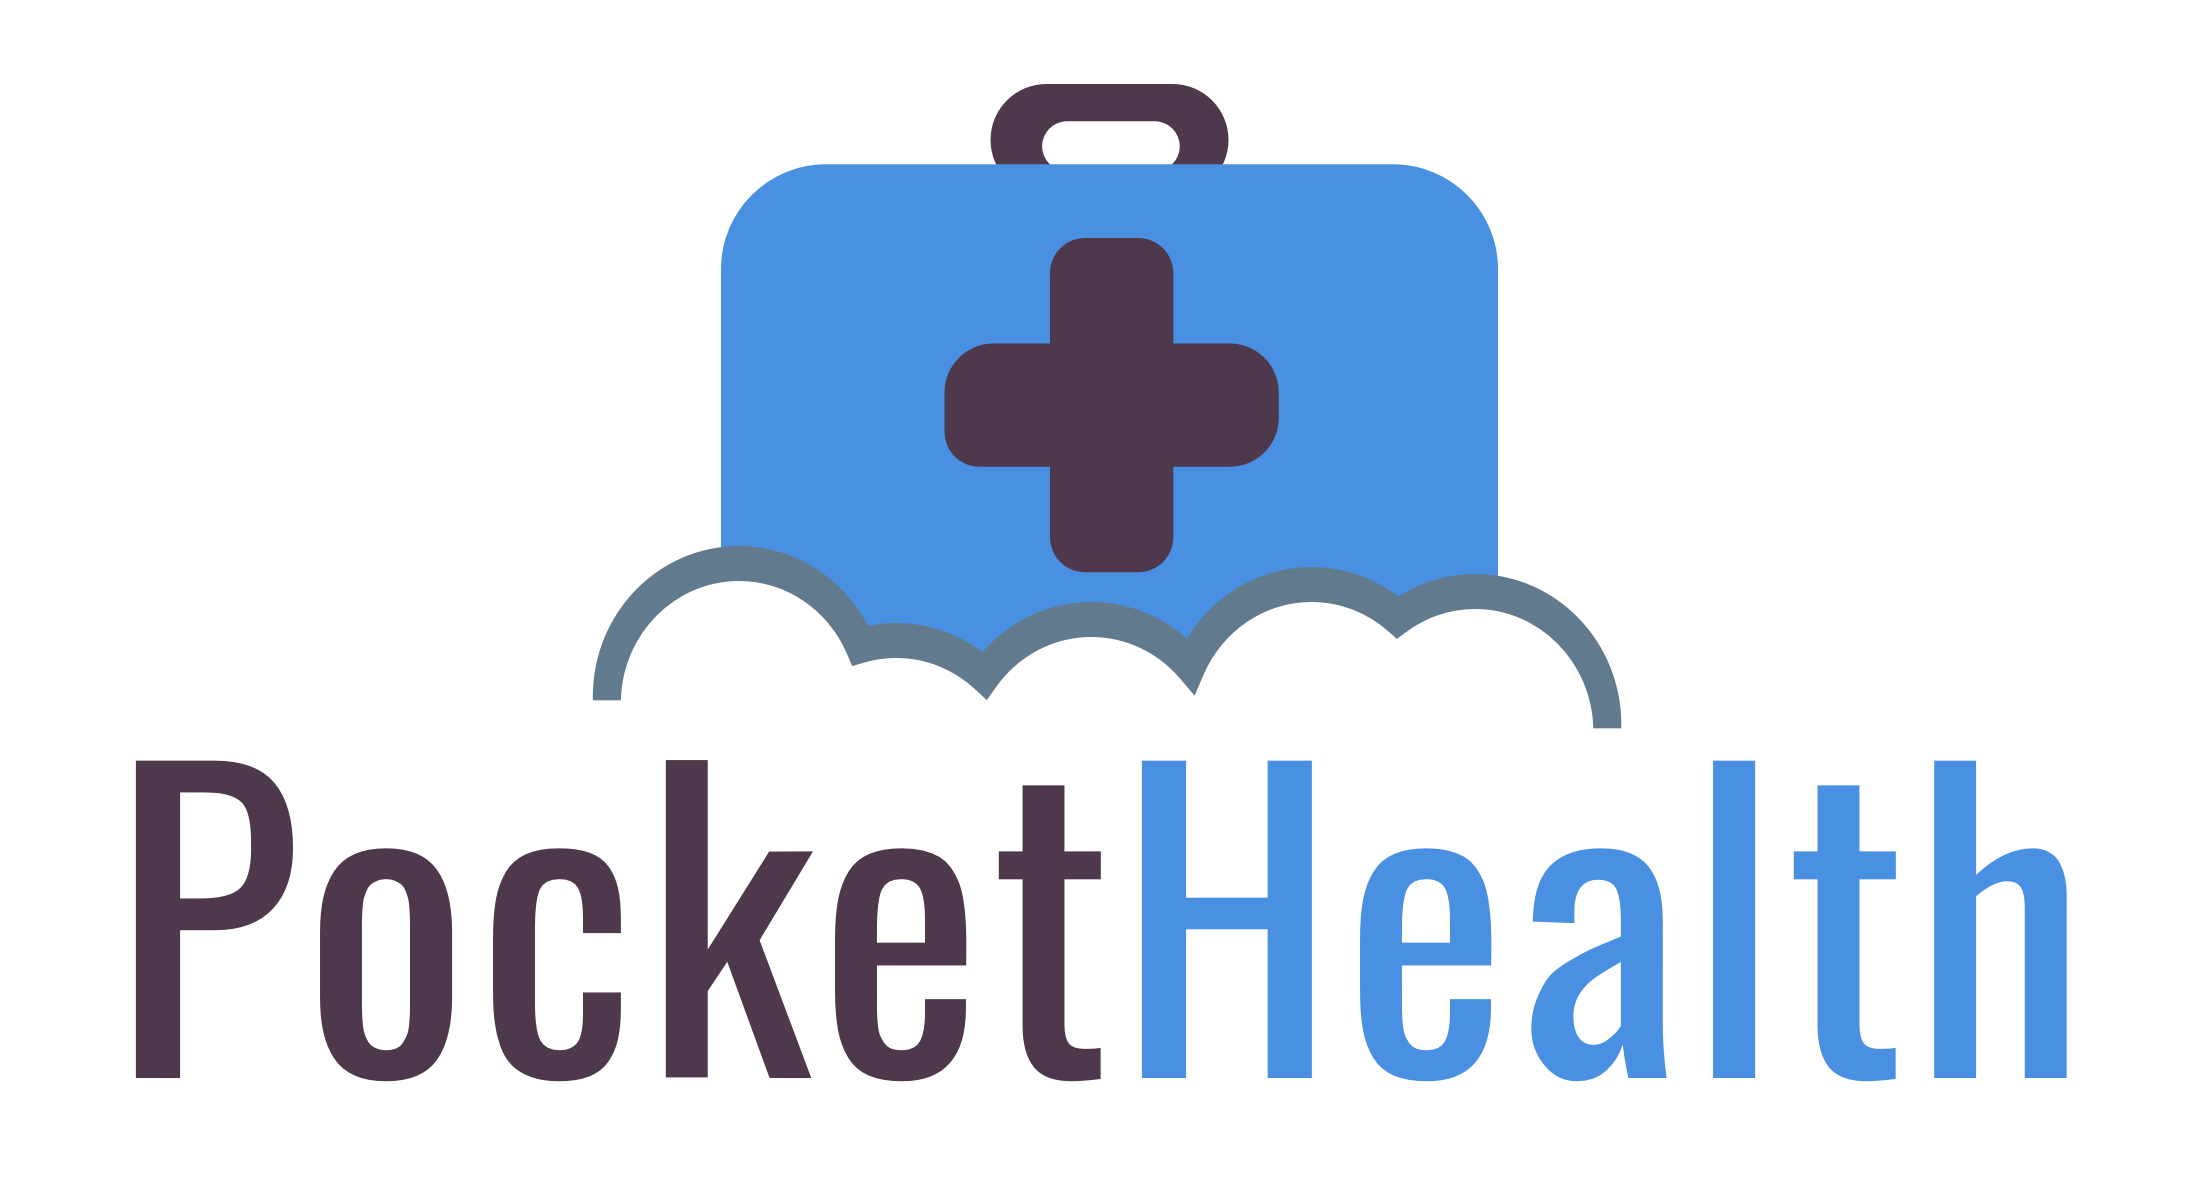 Pocket Health